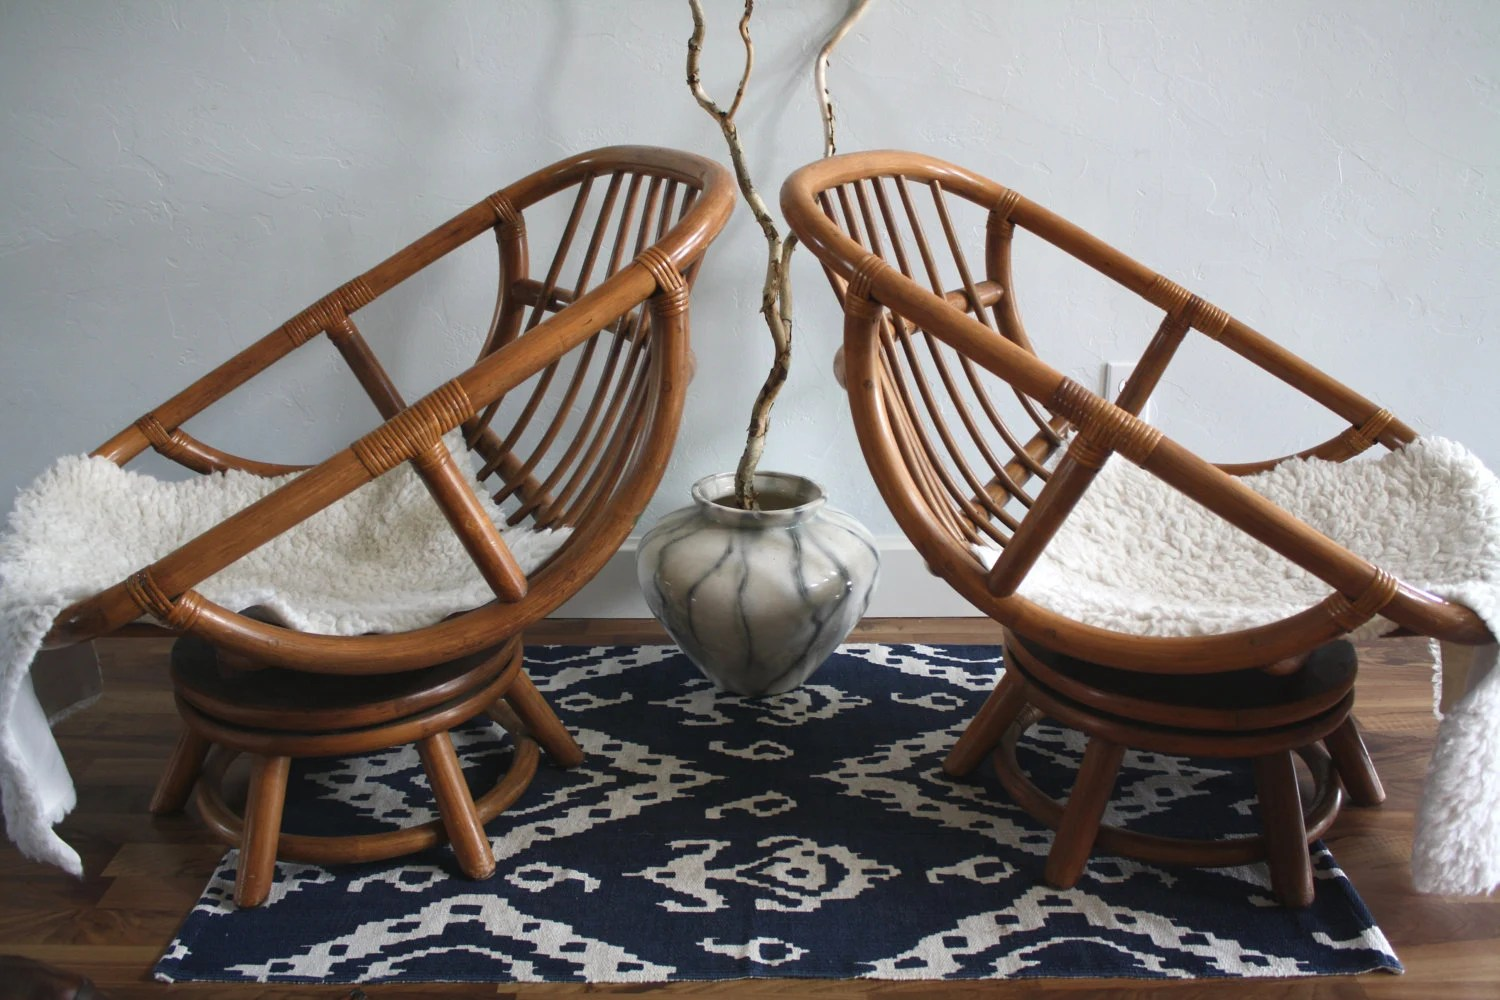 Wicker Egg Chairs Vintage Bamboo Swivel Egg Chairs Boho Chic Set Of 2 Rattan